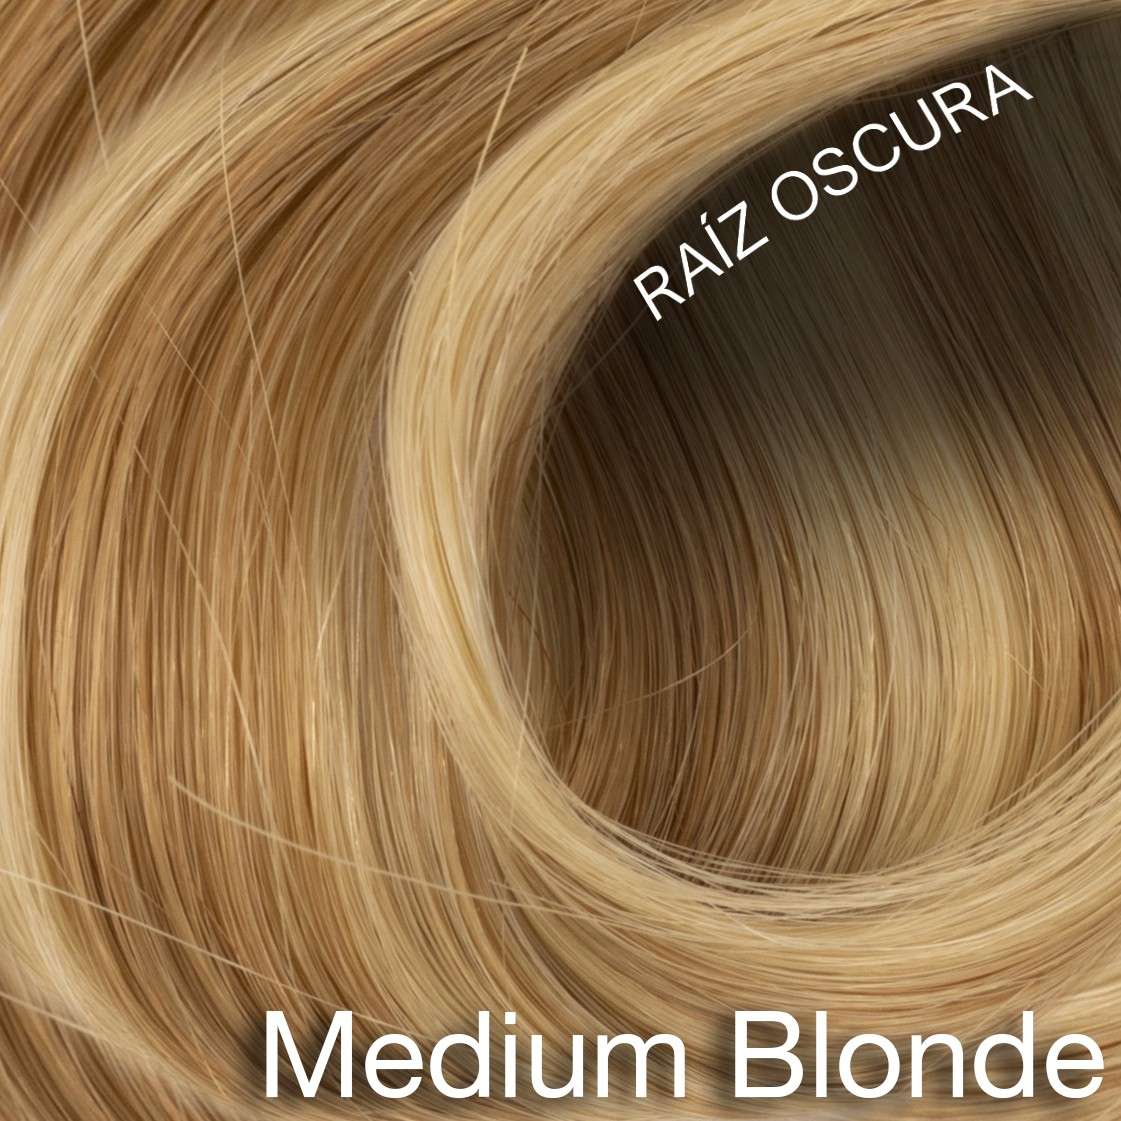 Medium Blond ROOTED